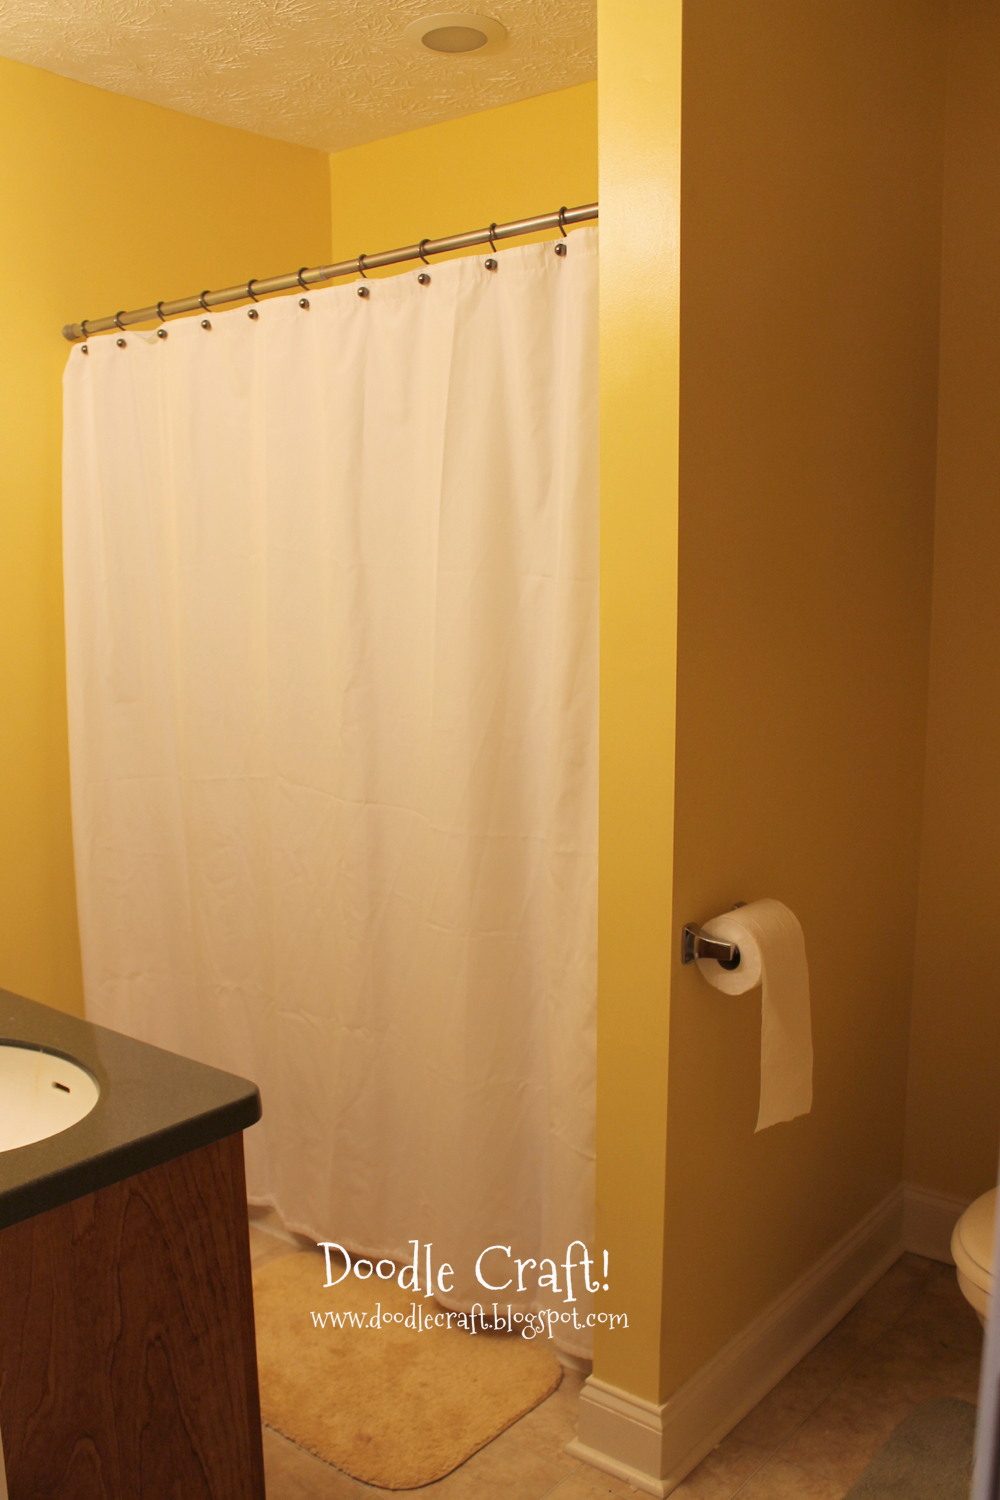 Doodlecraft stencil a shower curtain with cutting edge for Bathroom yellow paint